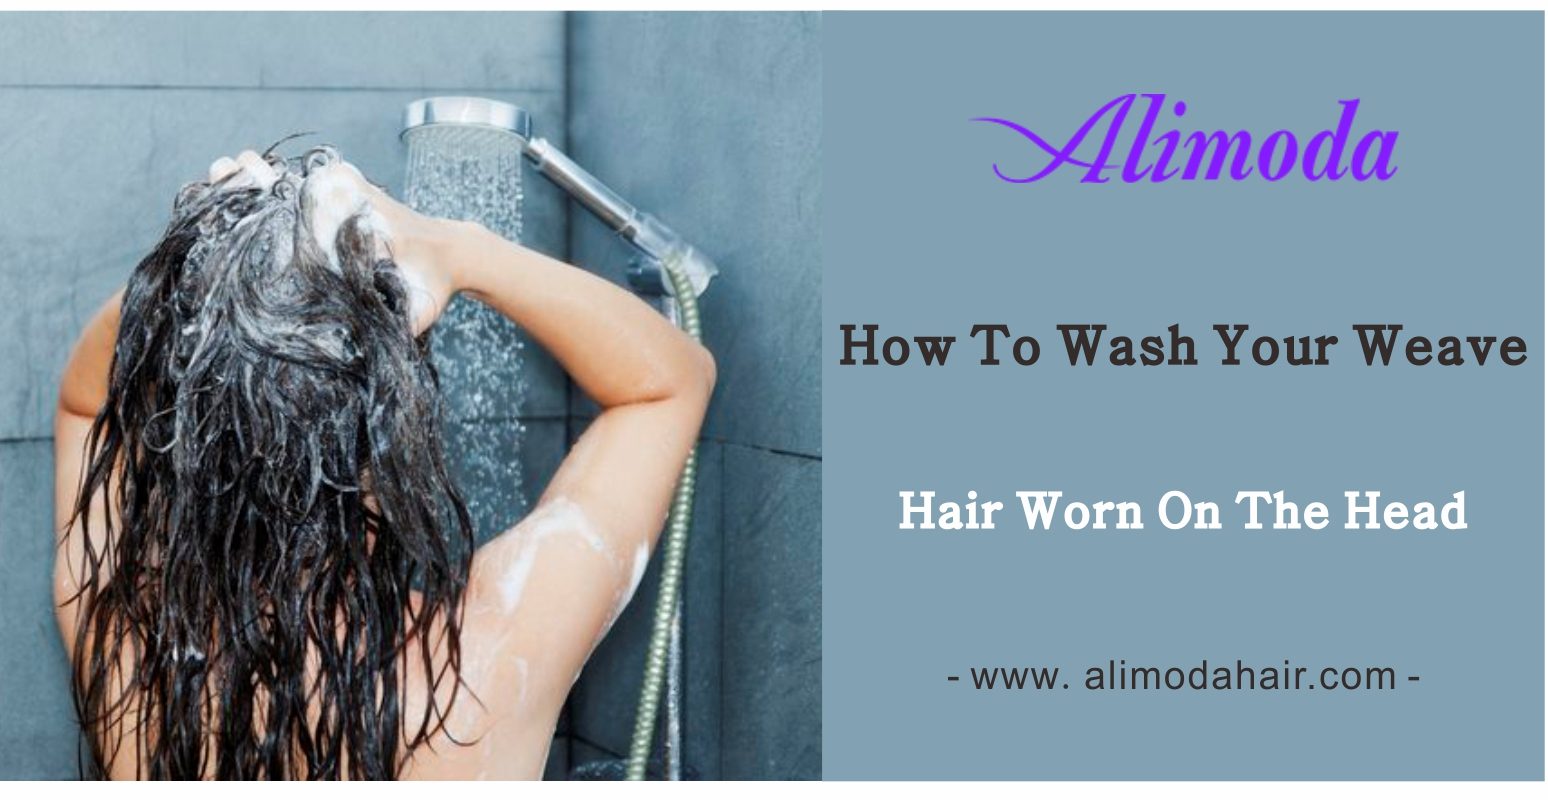 How to wash your weave hair worn on the head